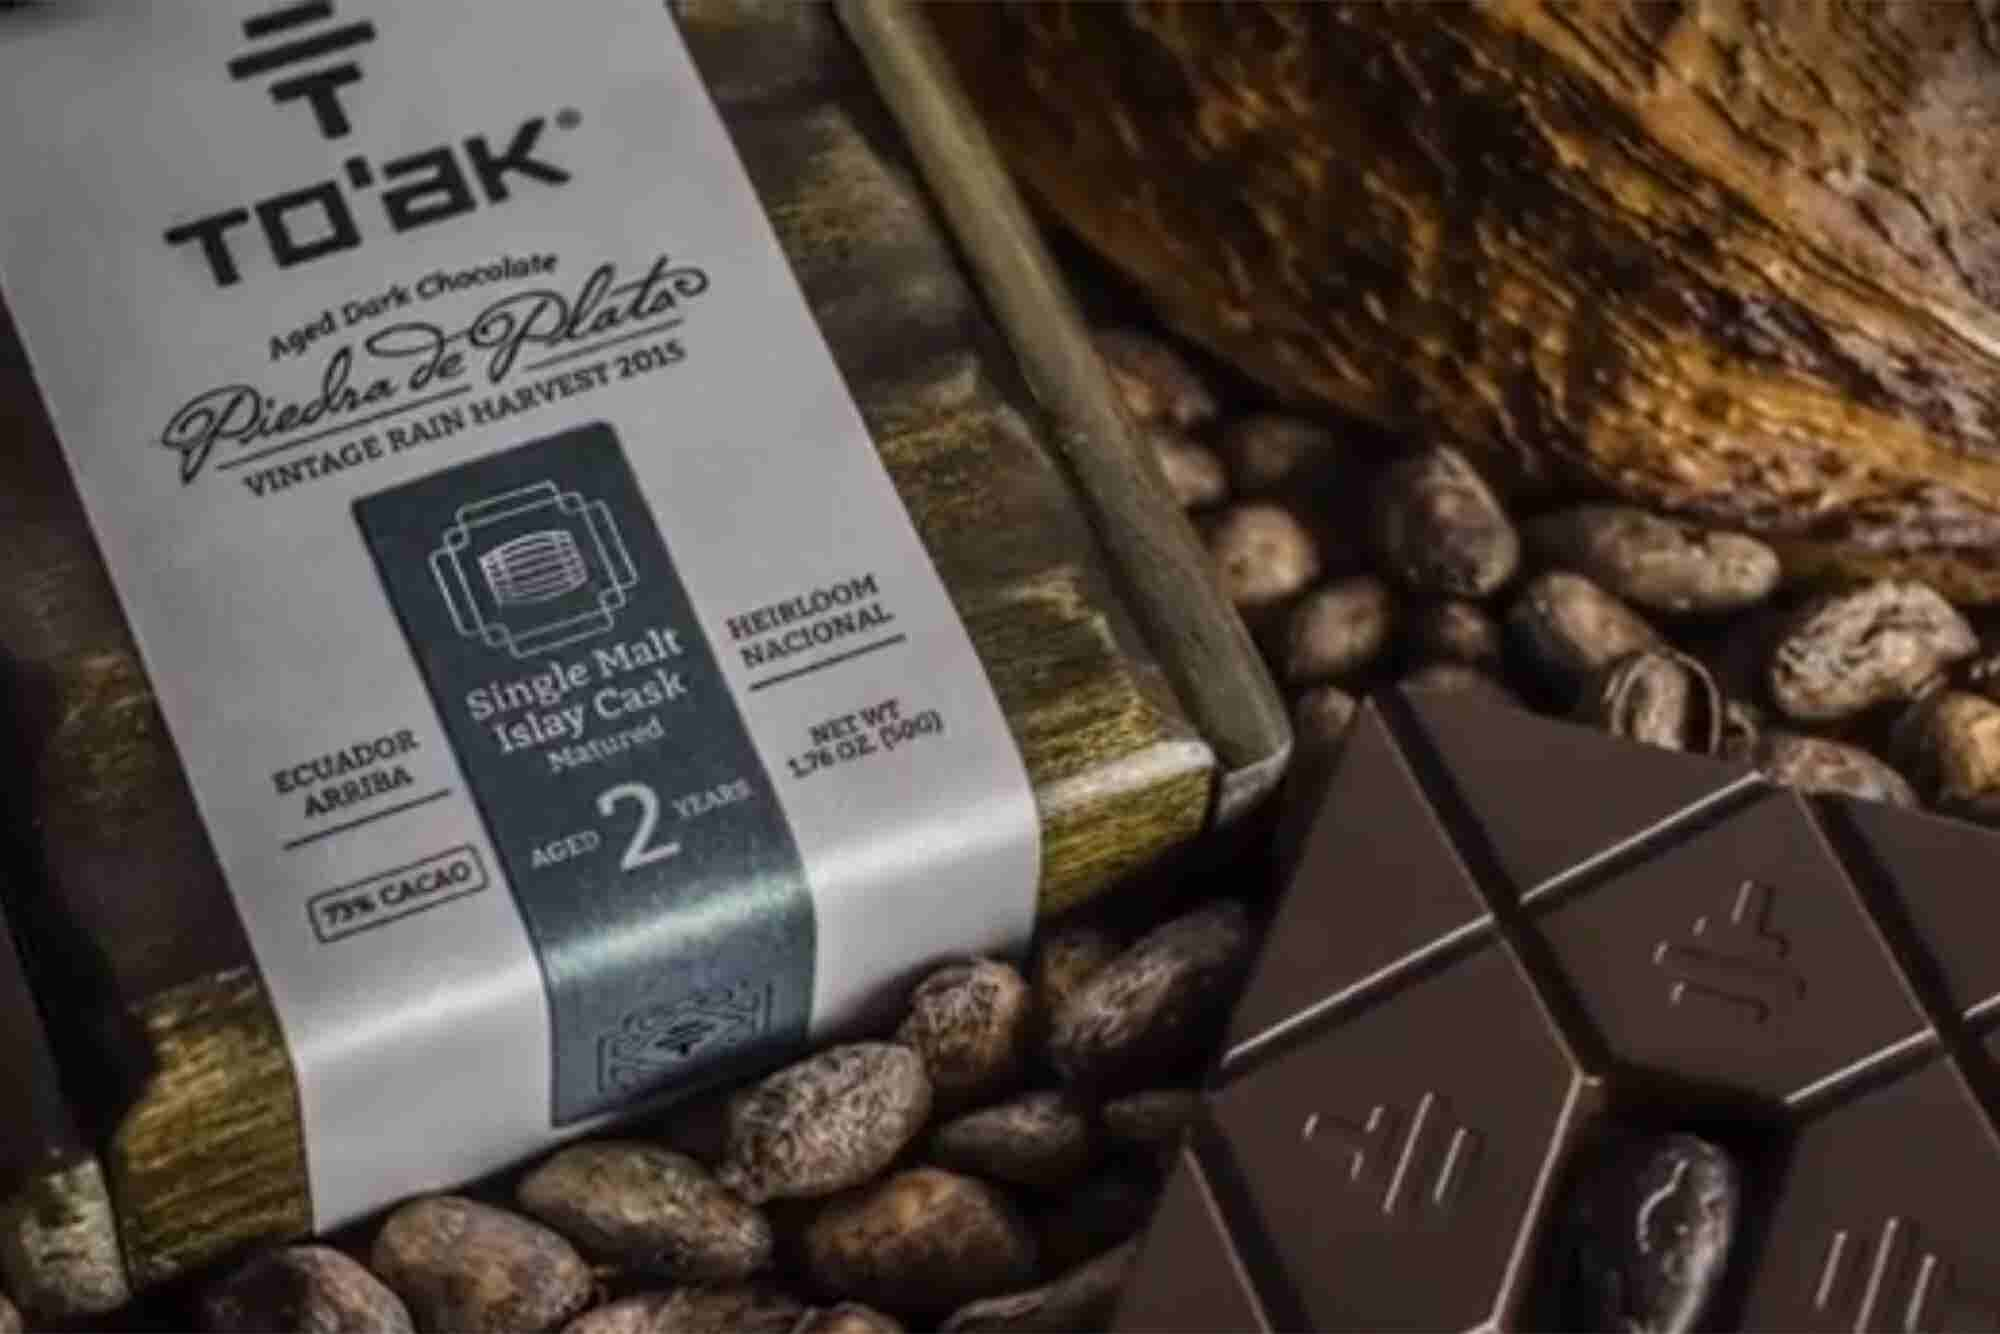 This Entrepreneur Sells $355 Bars of Chocolate. Is He Crazy or a Geniu...